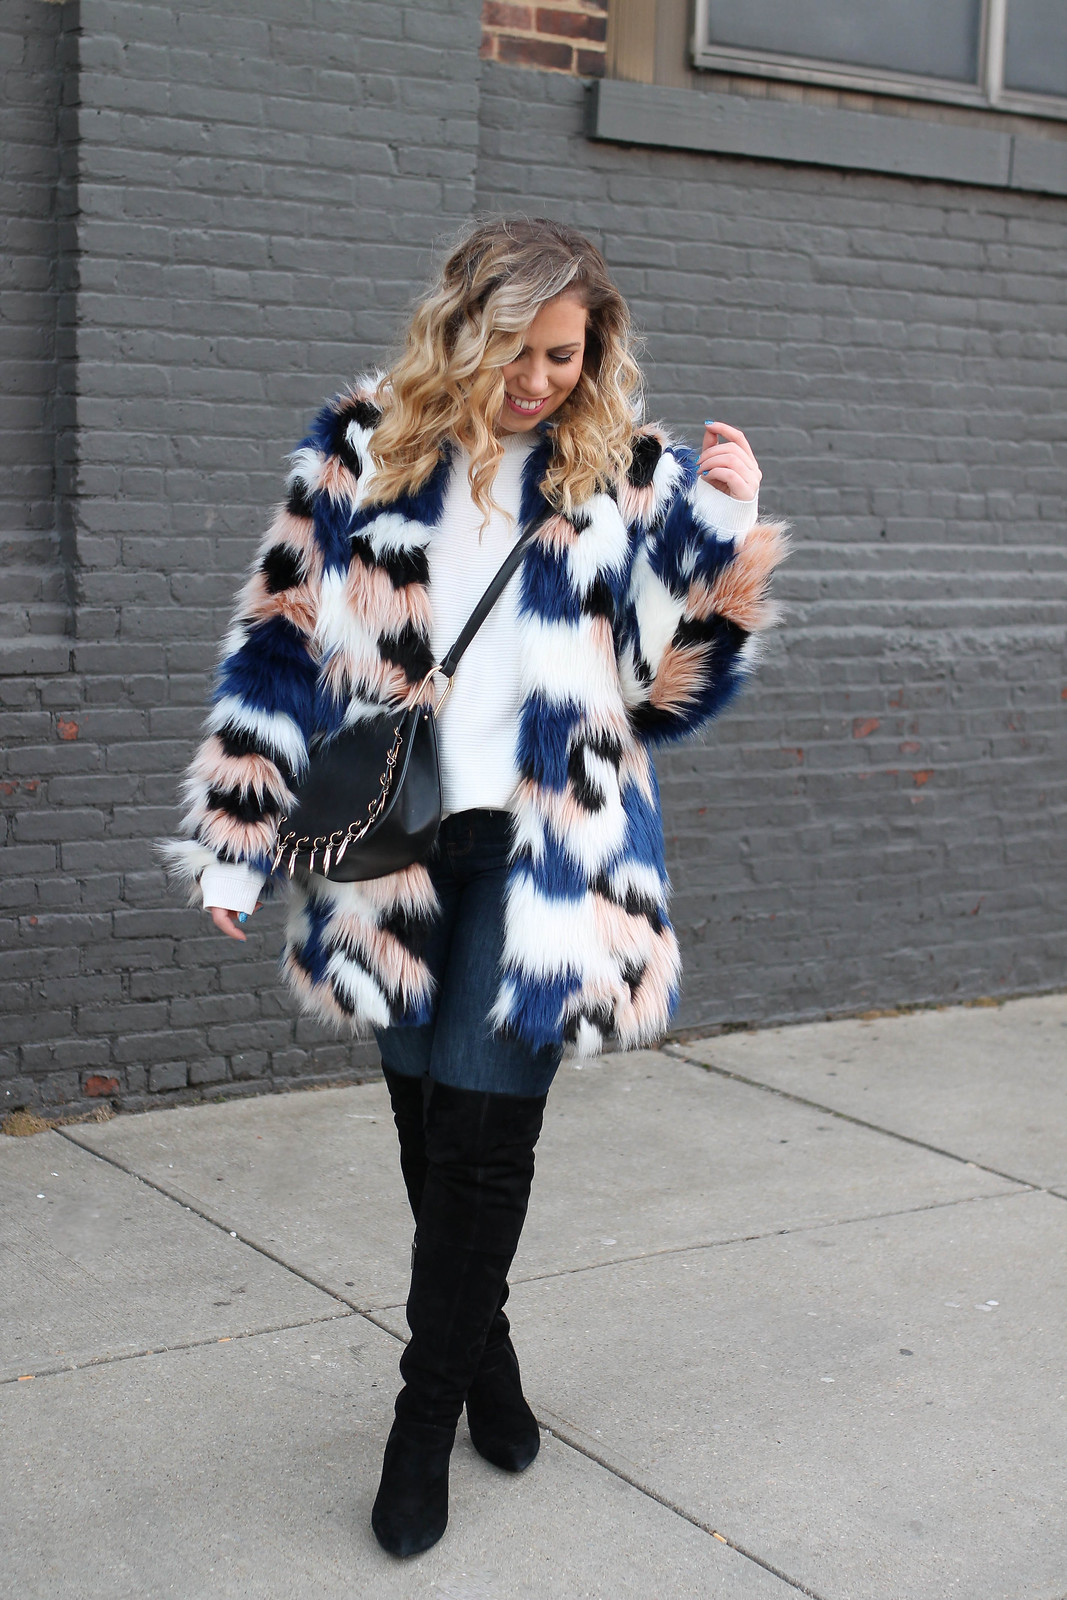 Colorful Faux Fur Winter Coat Old Navy Rockstar Jeans Black Suede OTK Boots Winter Outfit Inspiration